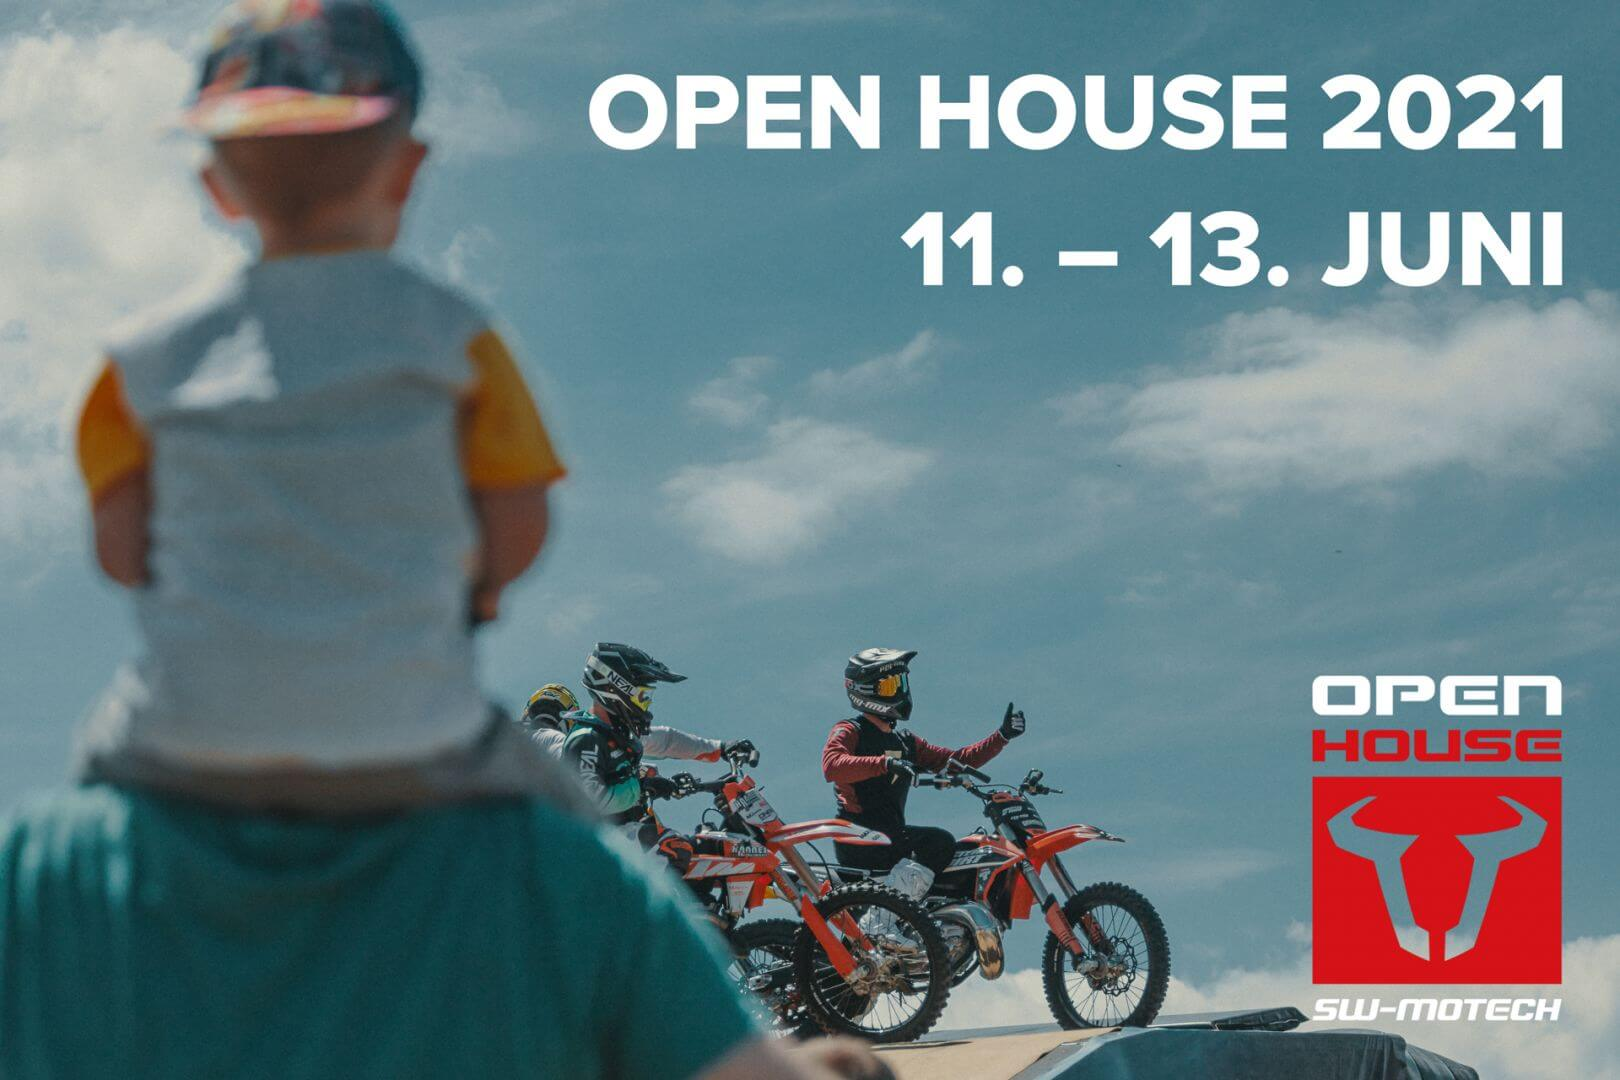 SW-Motech: Open House 2021